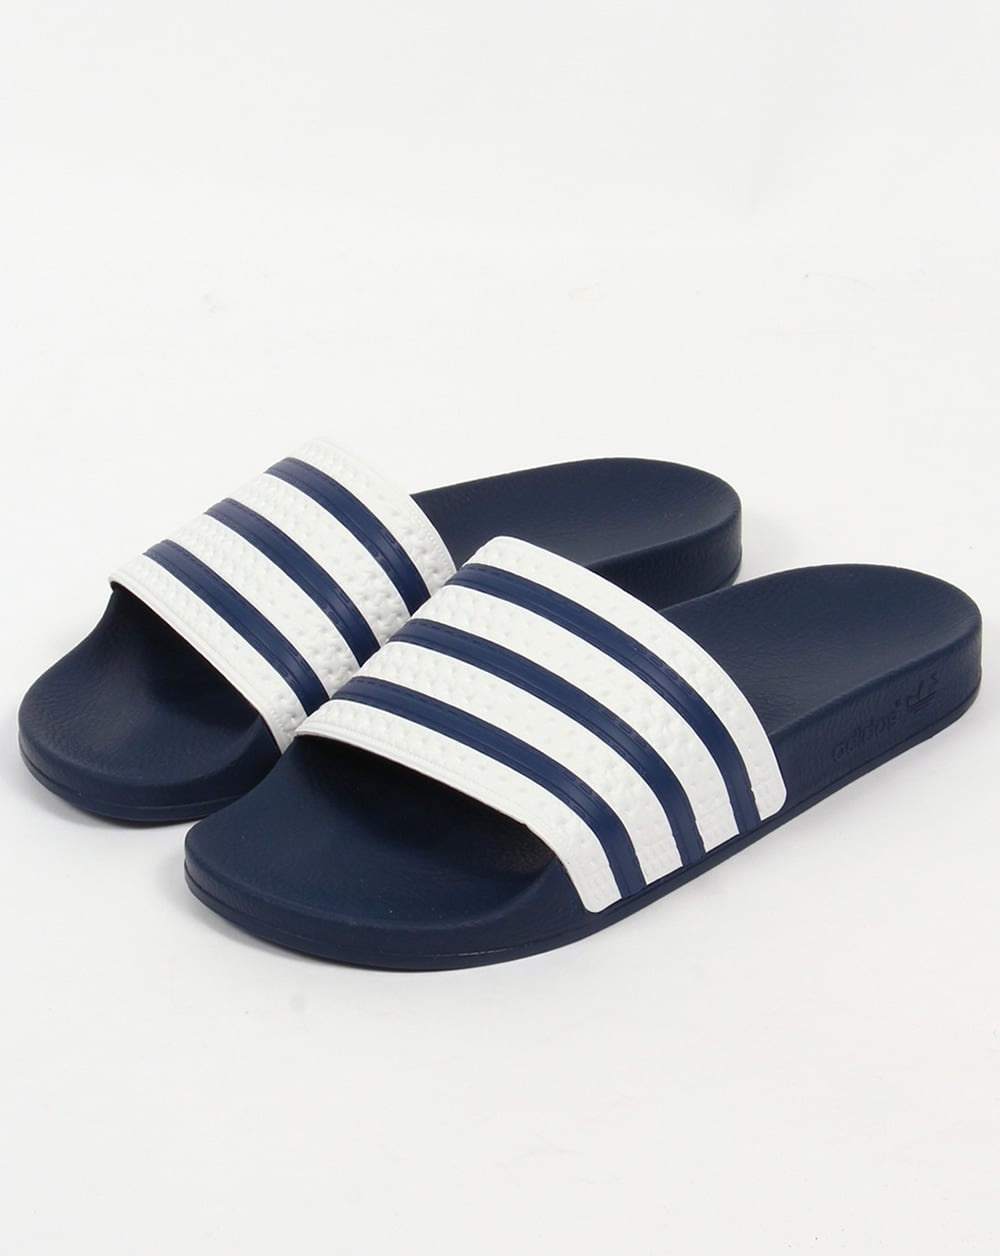 b9f280a38d0d Buy adidas adilette sandals for men   OFF58% Discounted